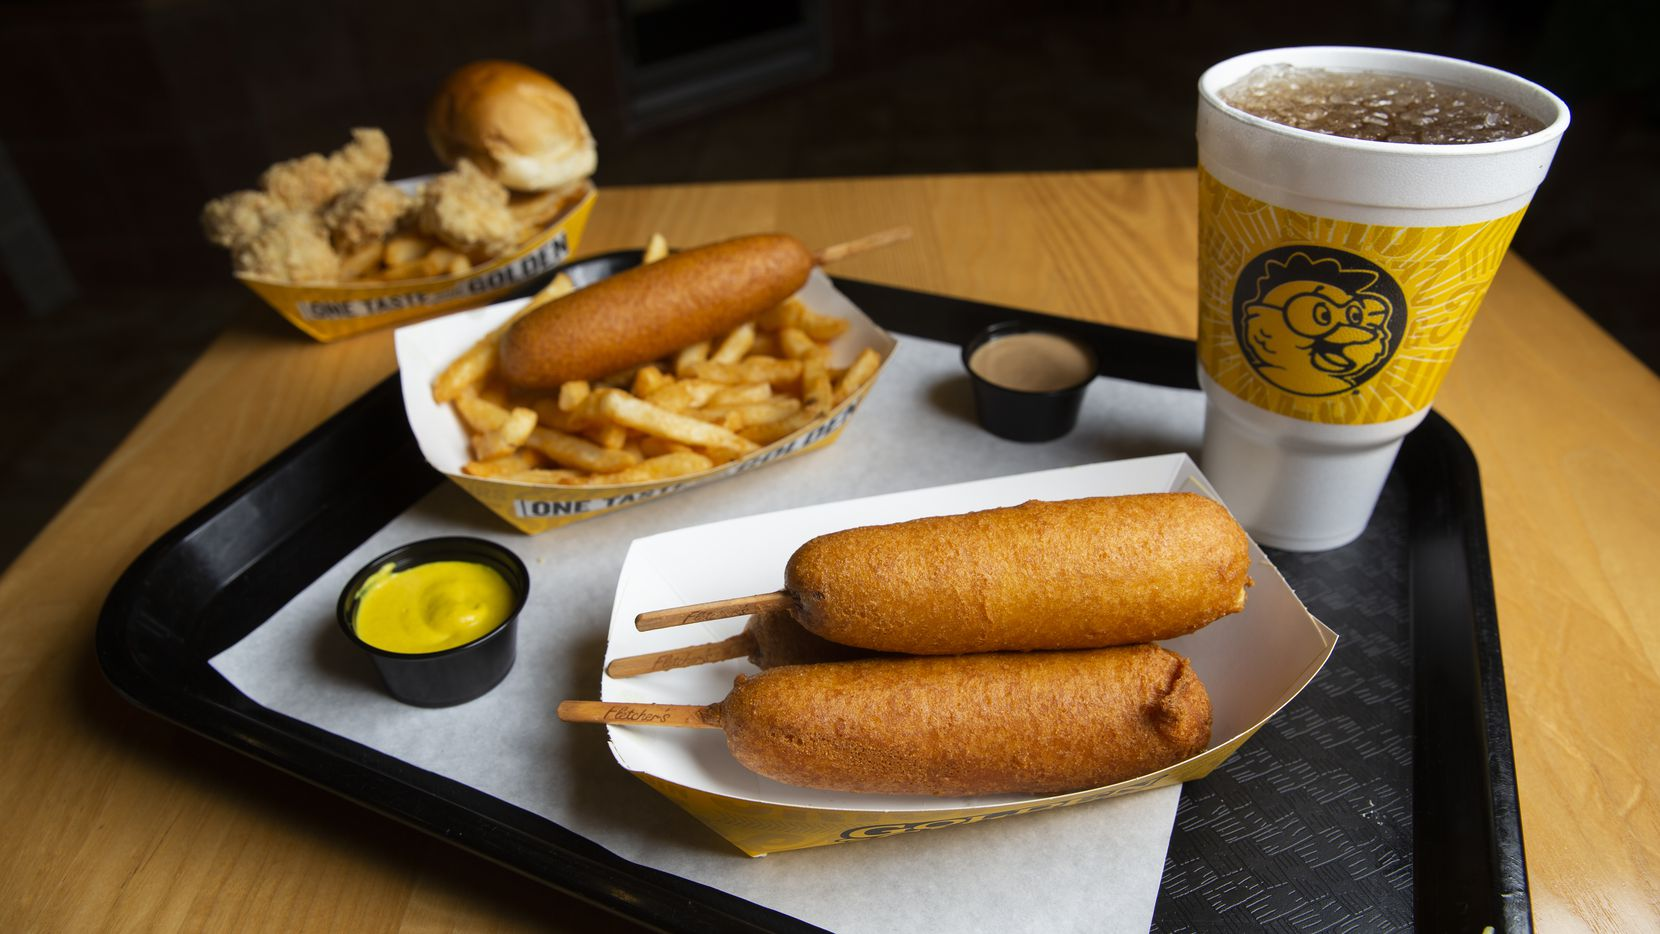 Fletcher's is partnering with Golden Chick to sell corny dogs at nearly 200 restaurants.